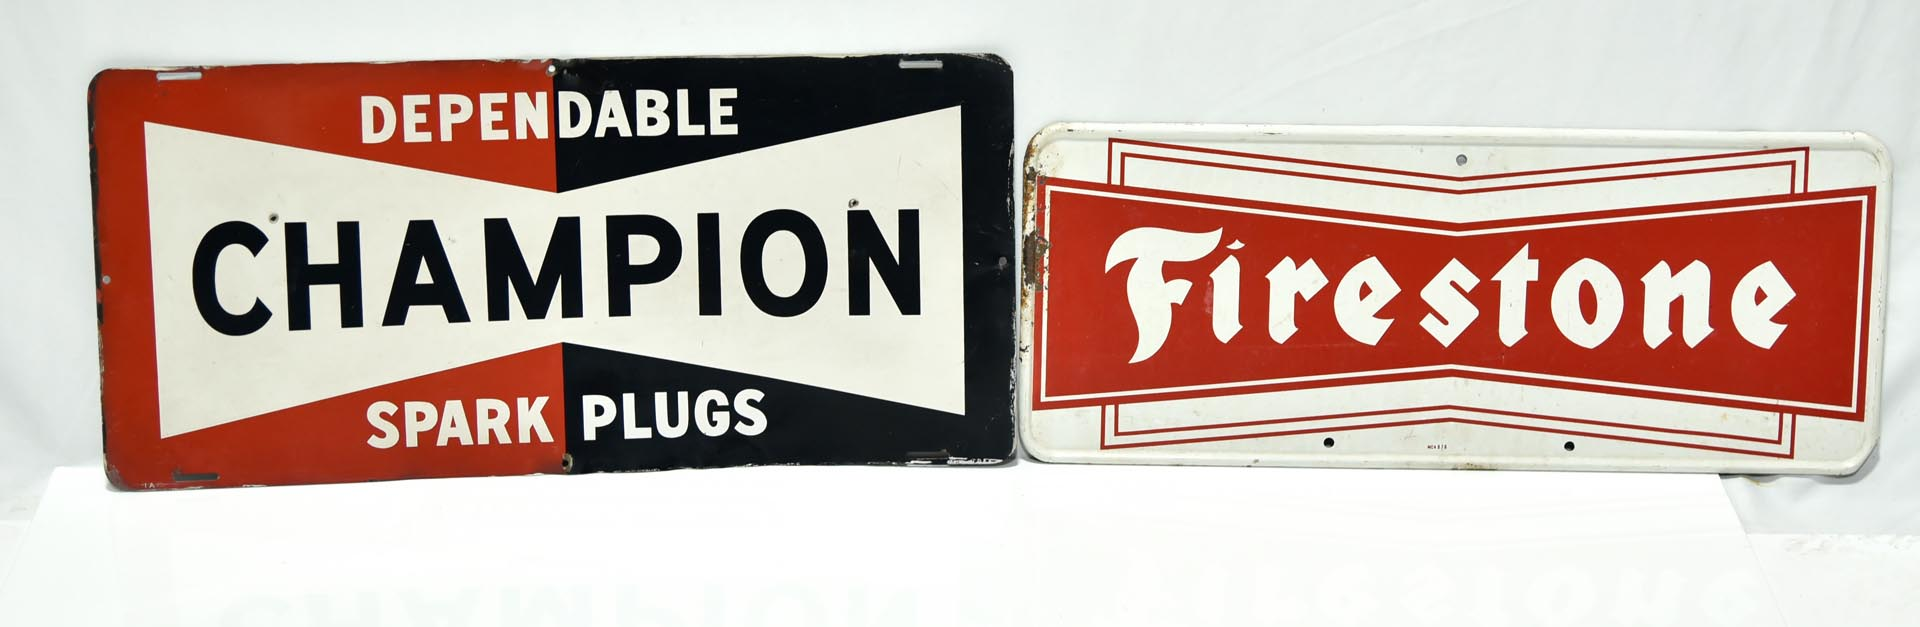 Lot of 2 Automobile Service Related Signs: Champion Spark Plugs & Firestone Tires